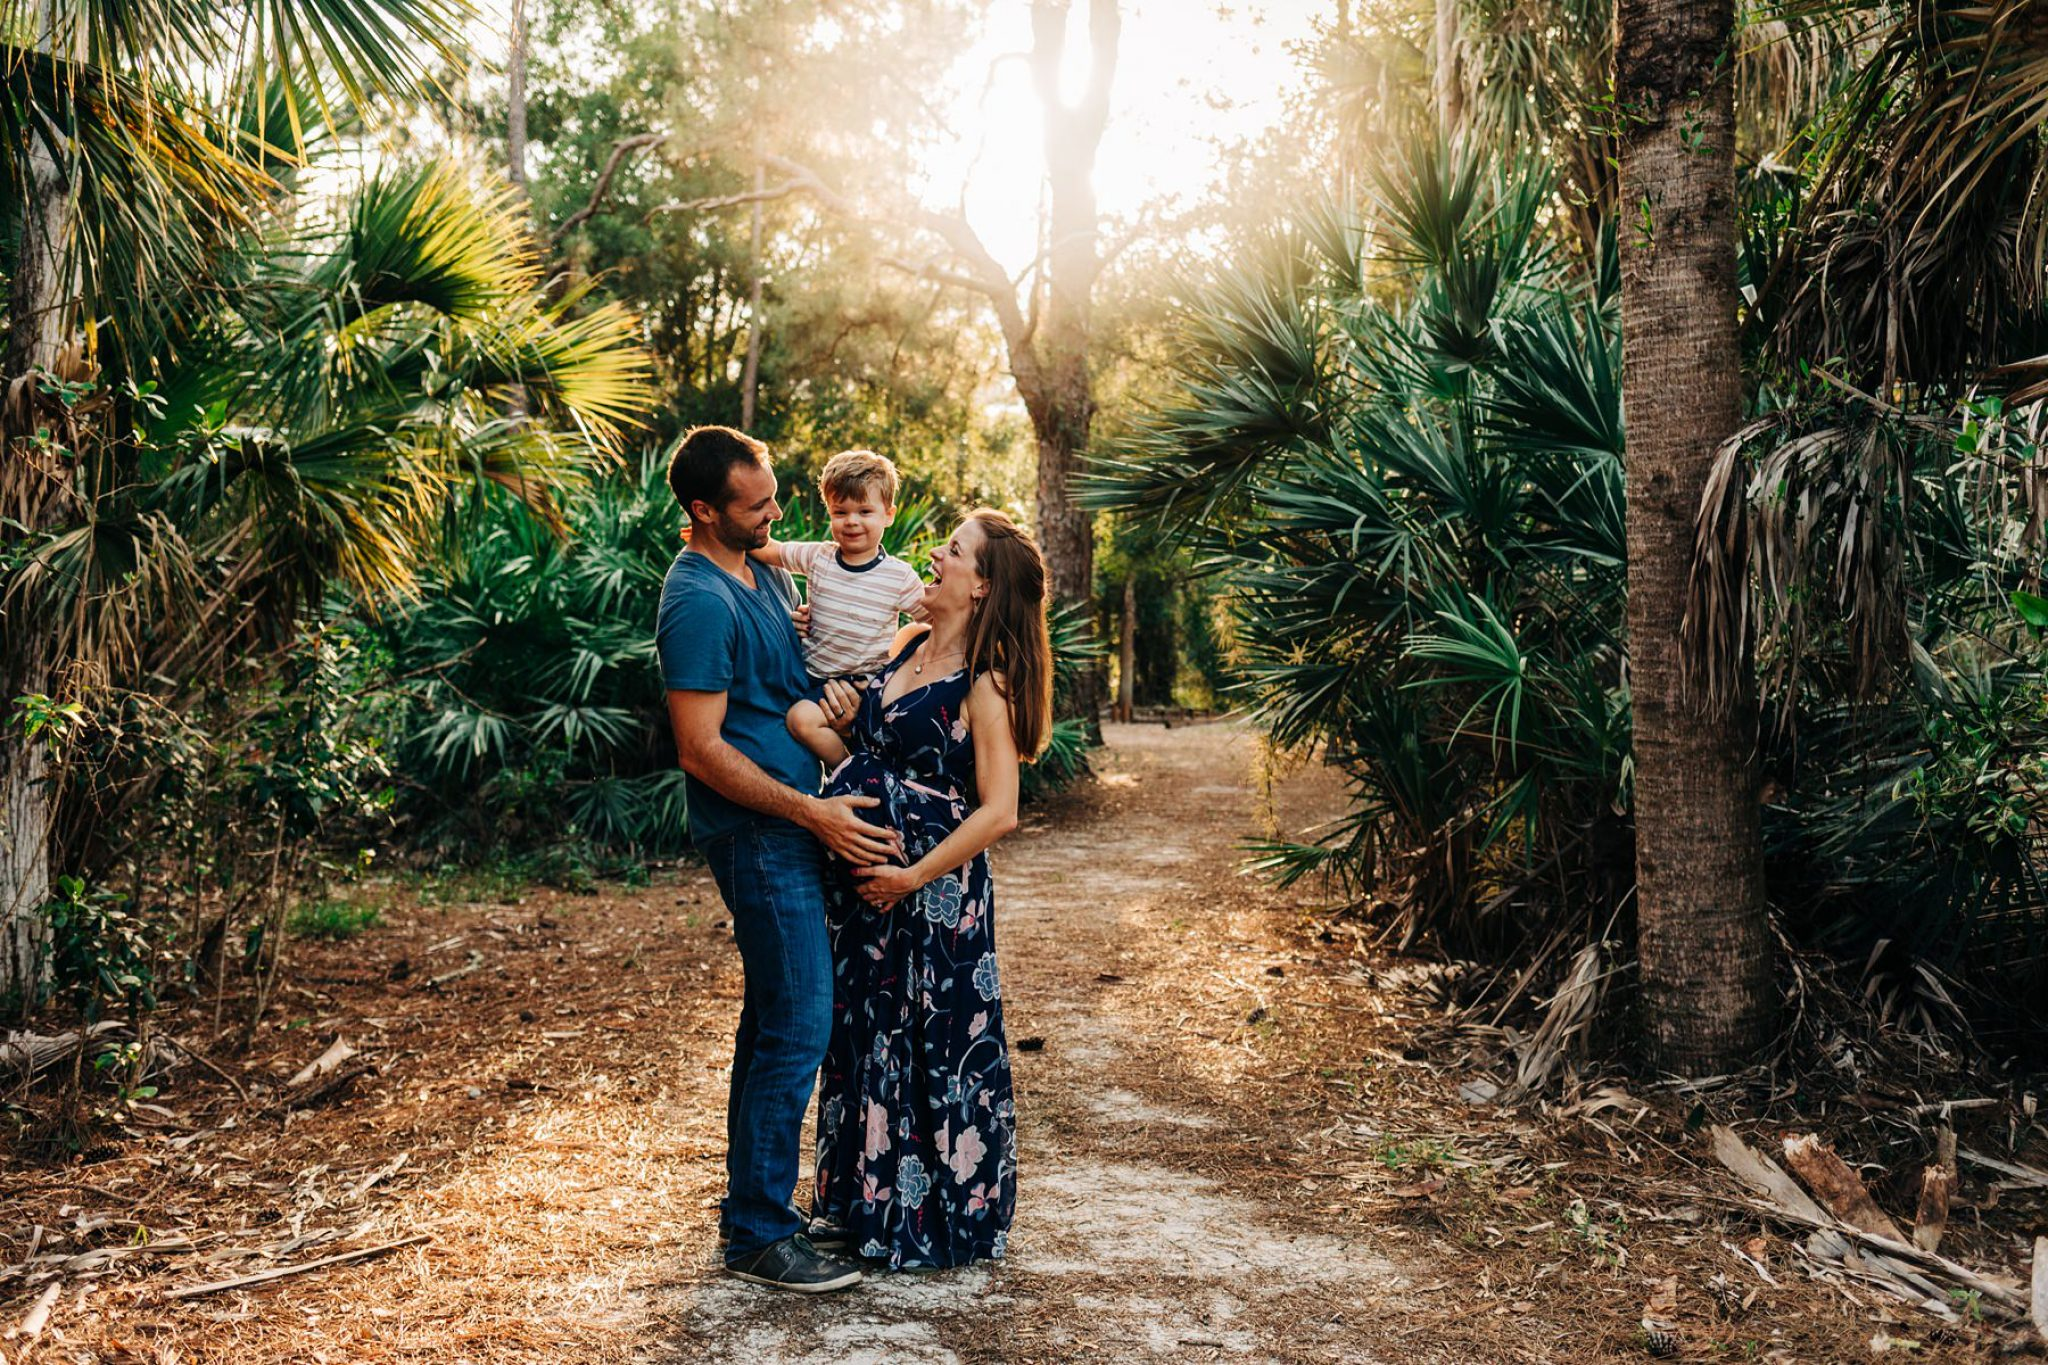 South Florida Family Session-Family Photography-EricaBrookePhotography-2